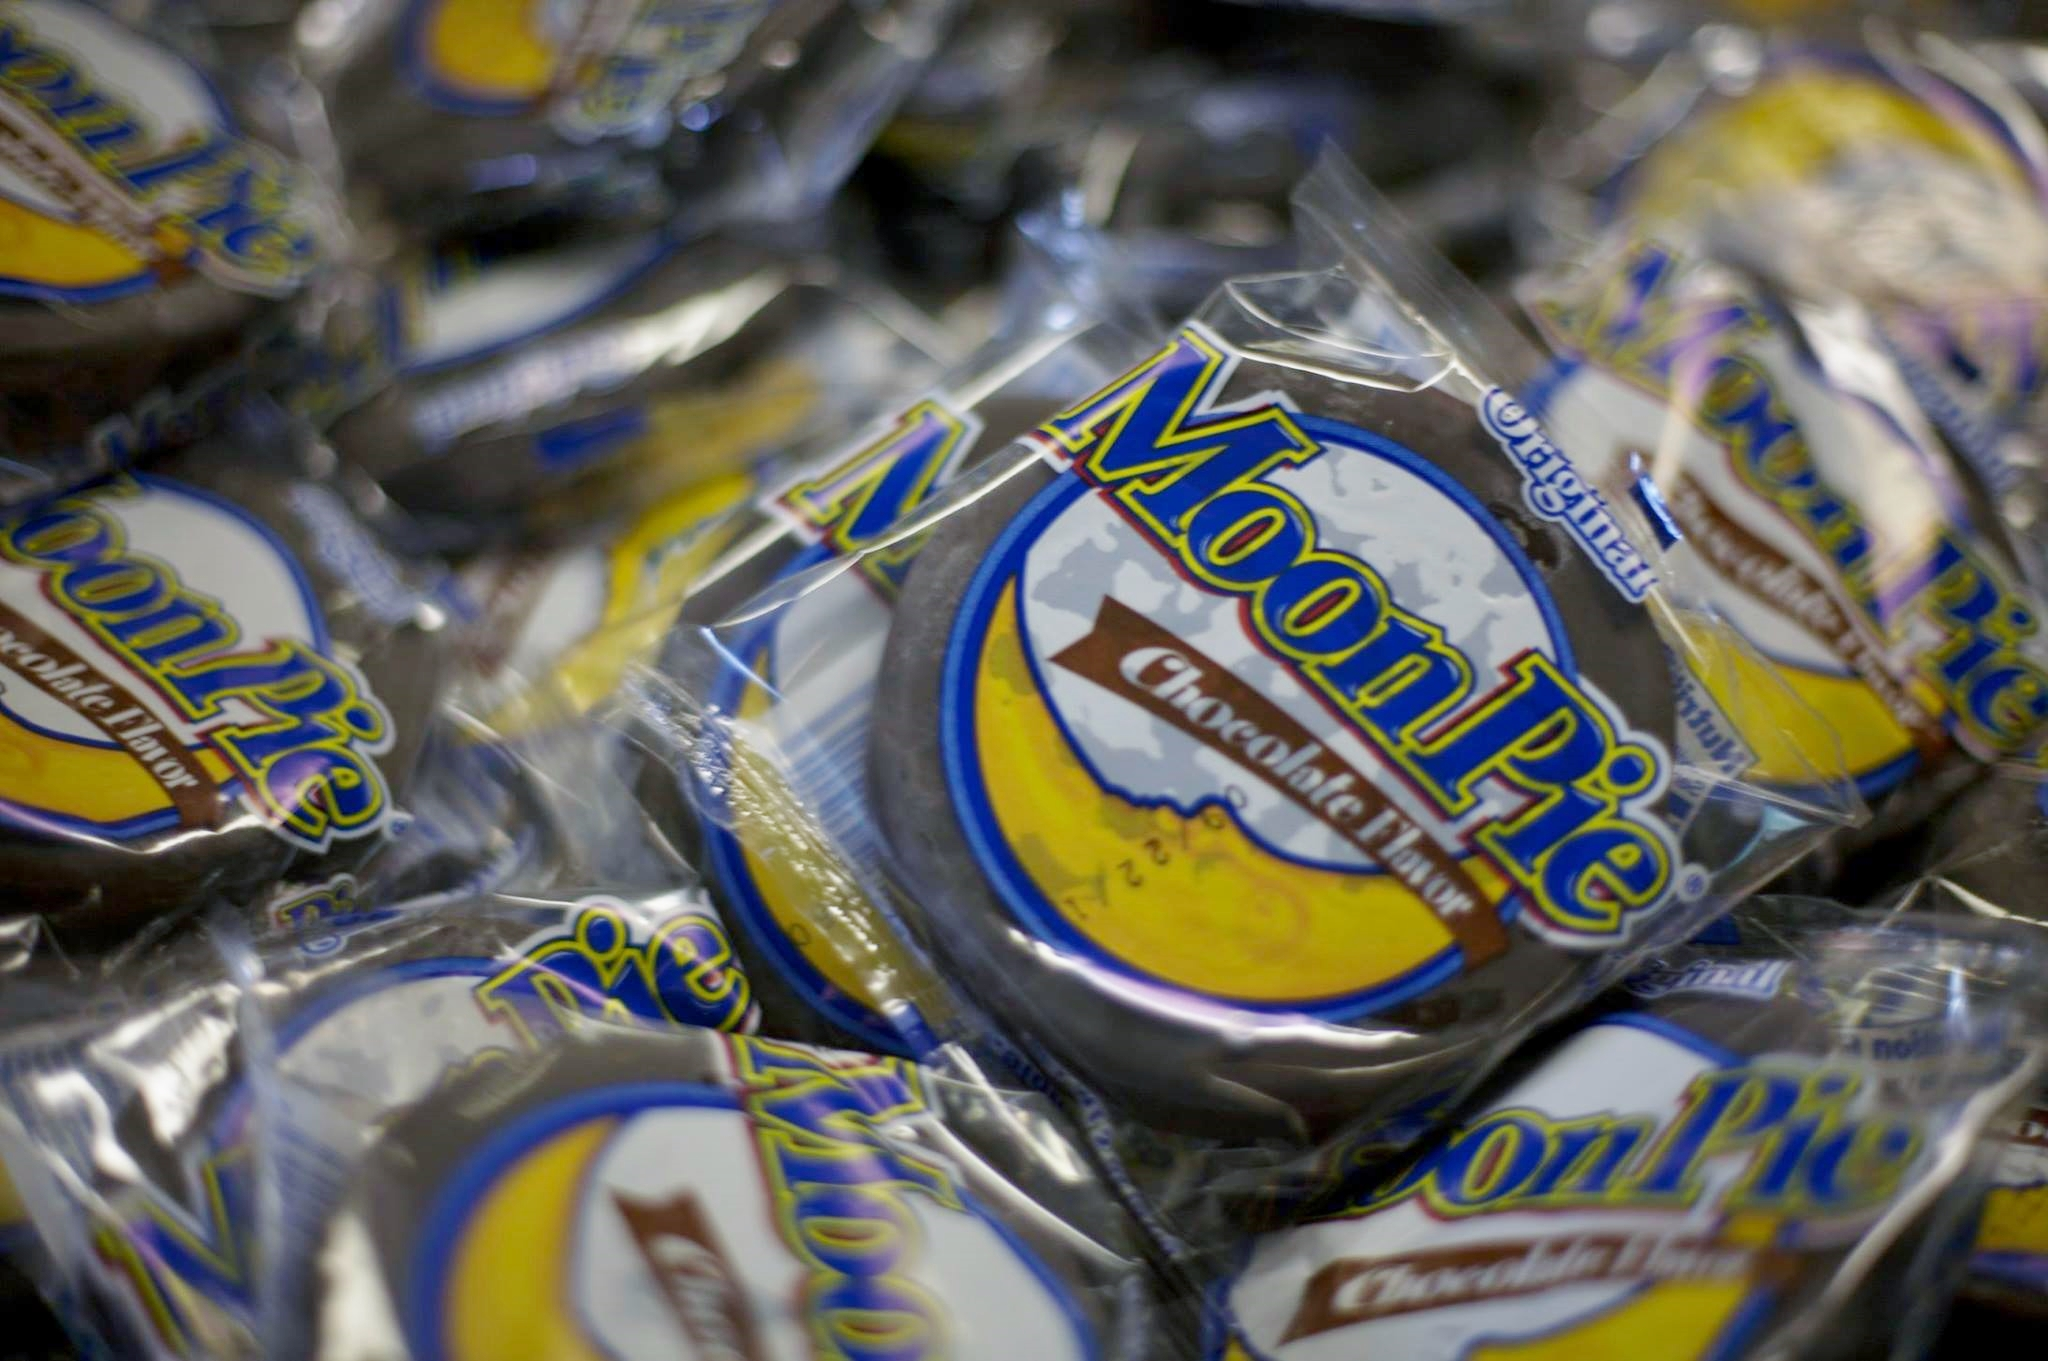 A Moon Pie with every meal!